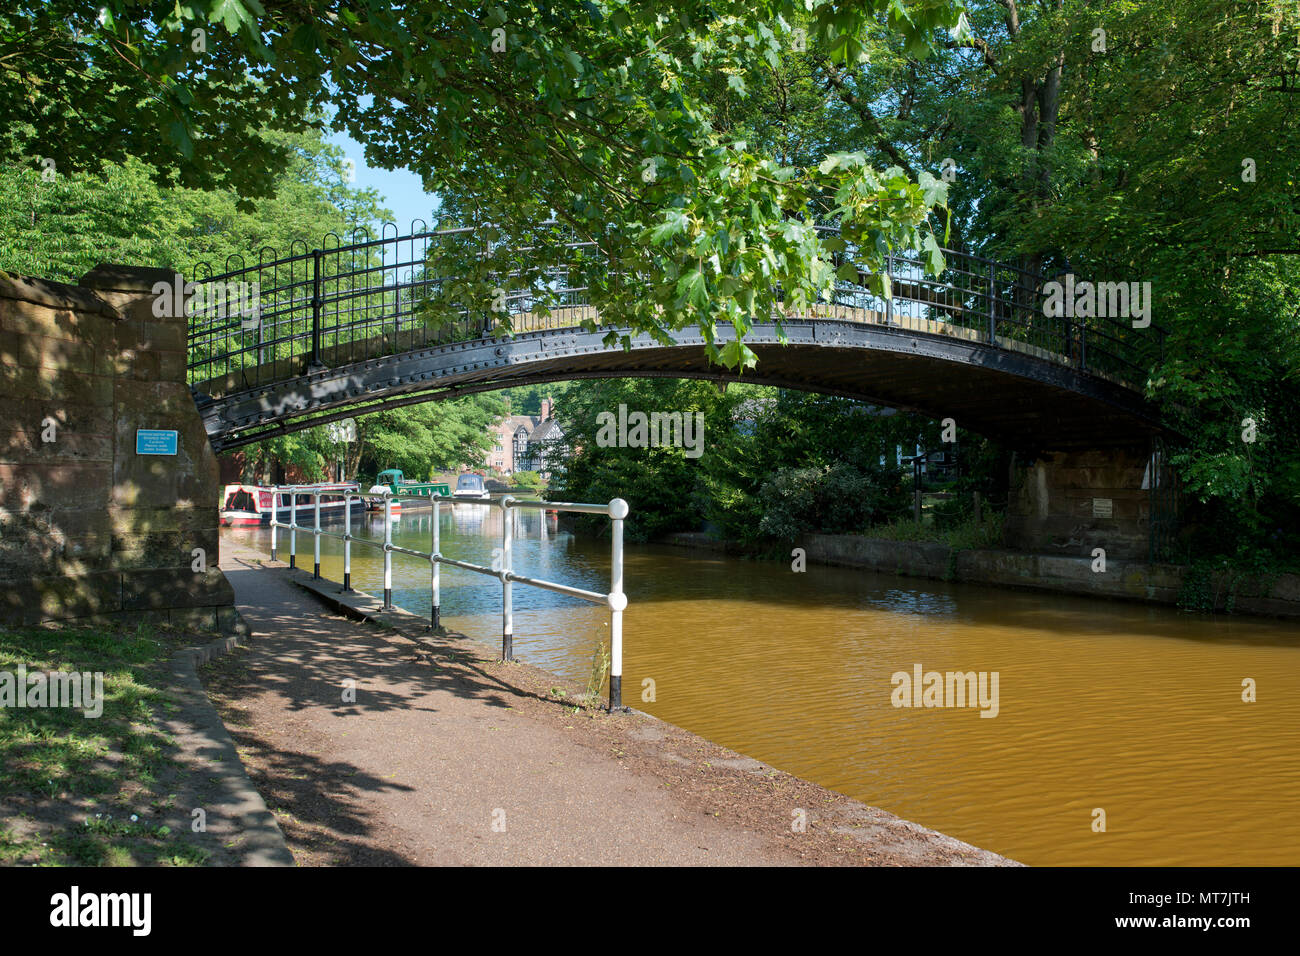 A footbridge across the Bridgewater Canal in Worsley, Salford, Greater Manchester, UK. - Stock Image